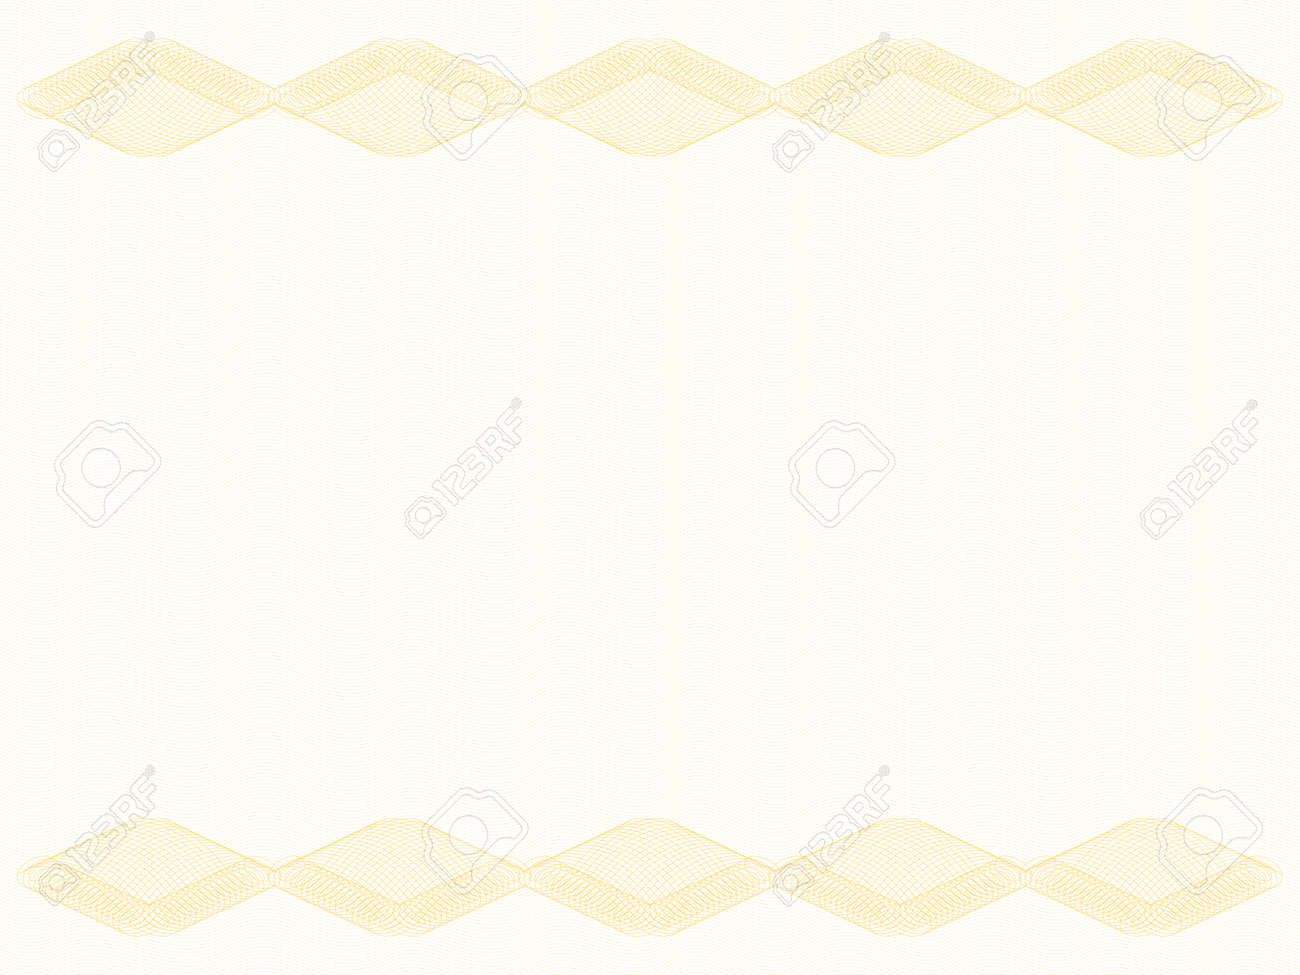 Certificate background with rhombus border, copy space. Golden guilloche, watermark pattern, subtle lines. Abstract design. Vector template A4 for diploma, passport, gift card, landscape orientation. EPS10 illustration - 168124039